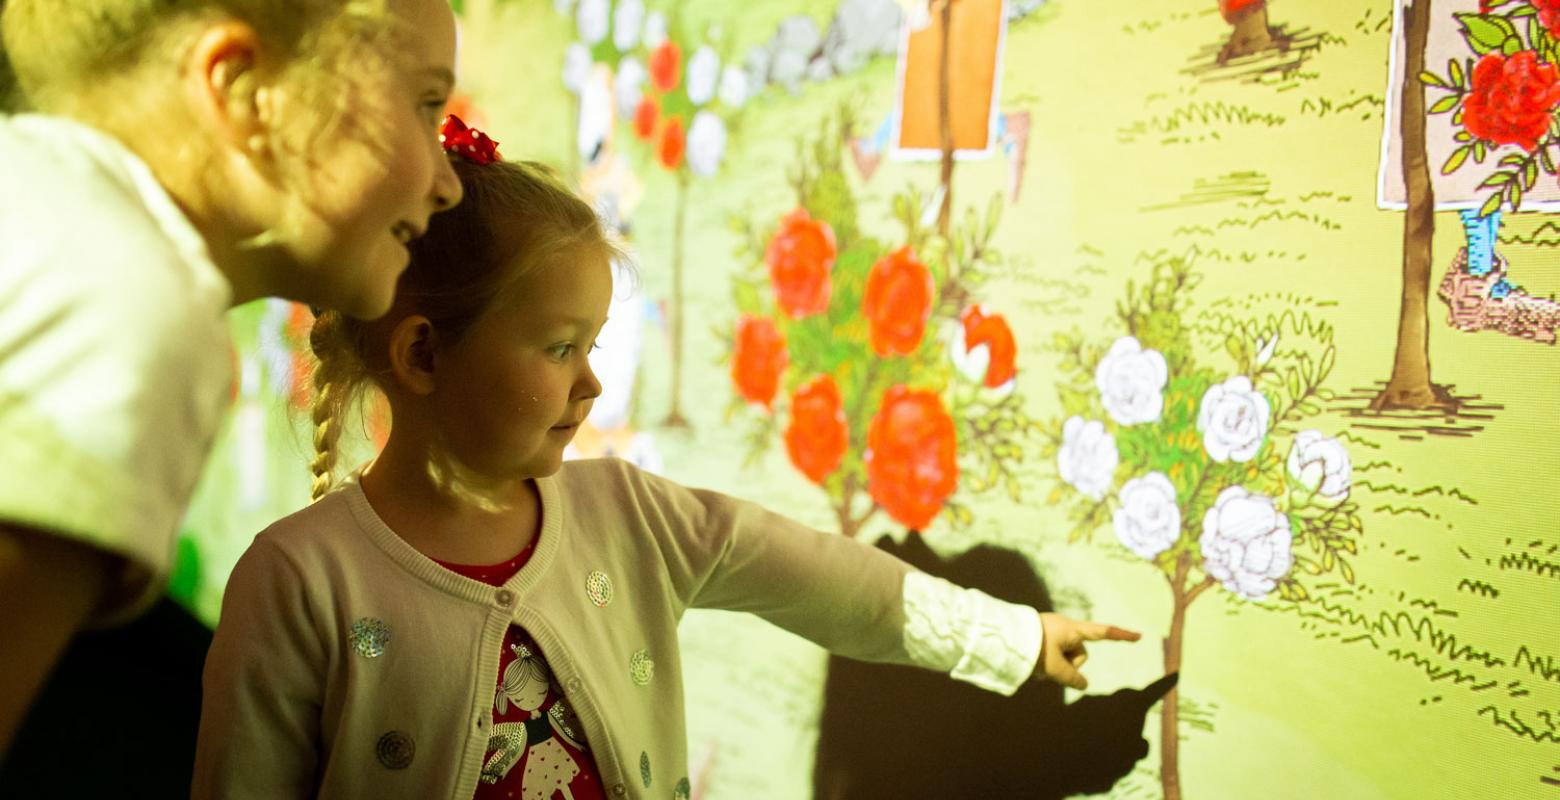 A little girl looks at a digital projection which includes red and white roses